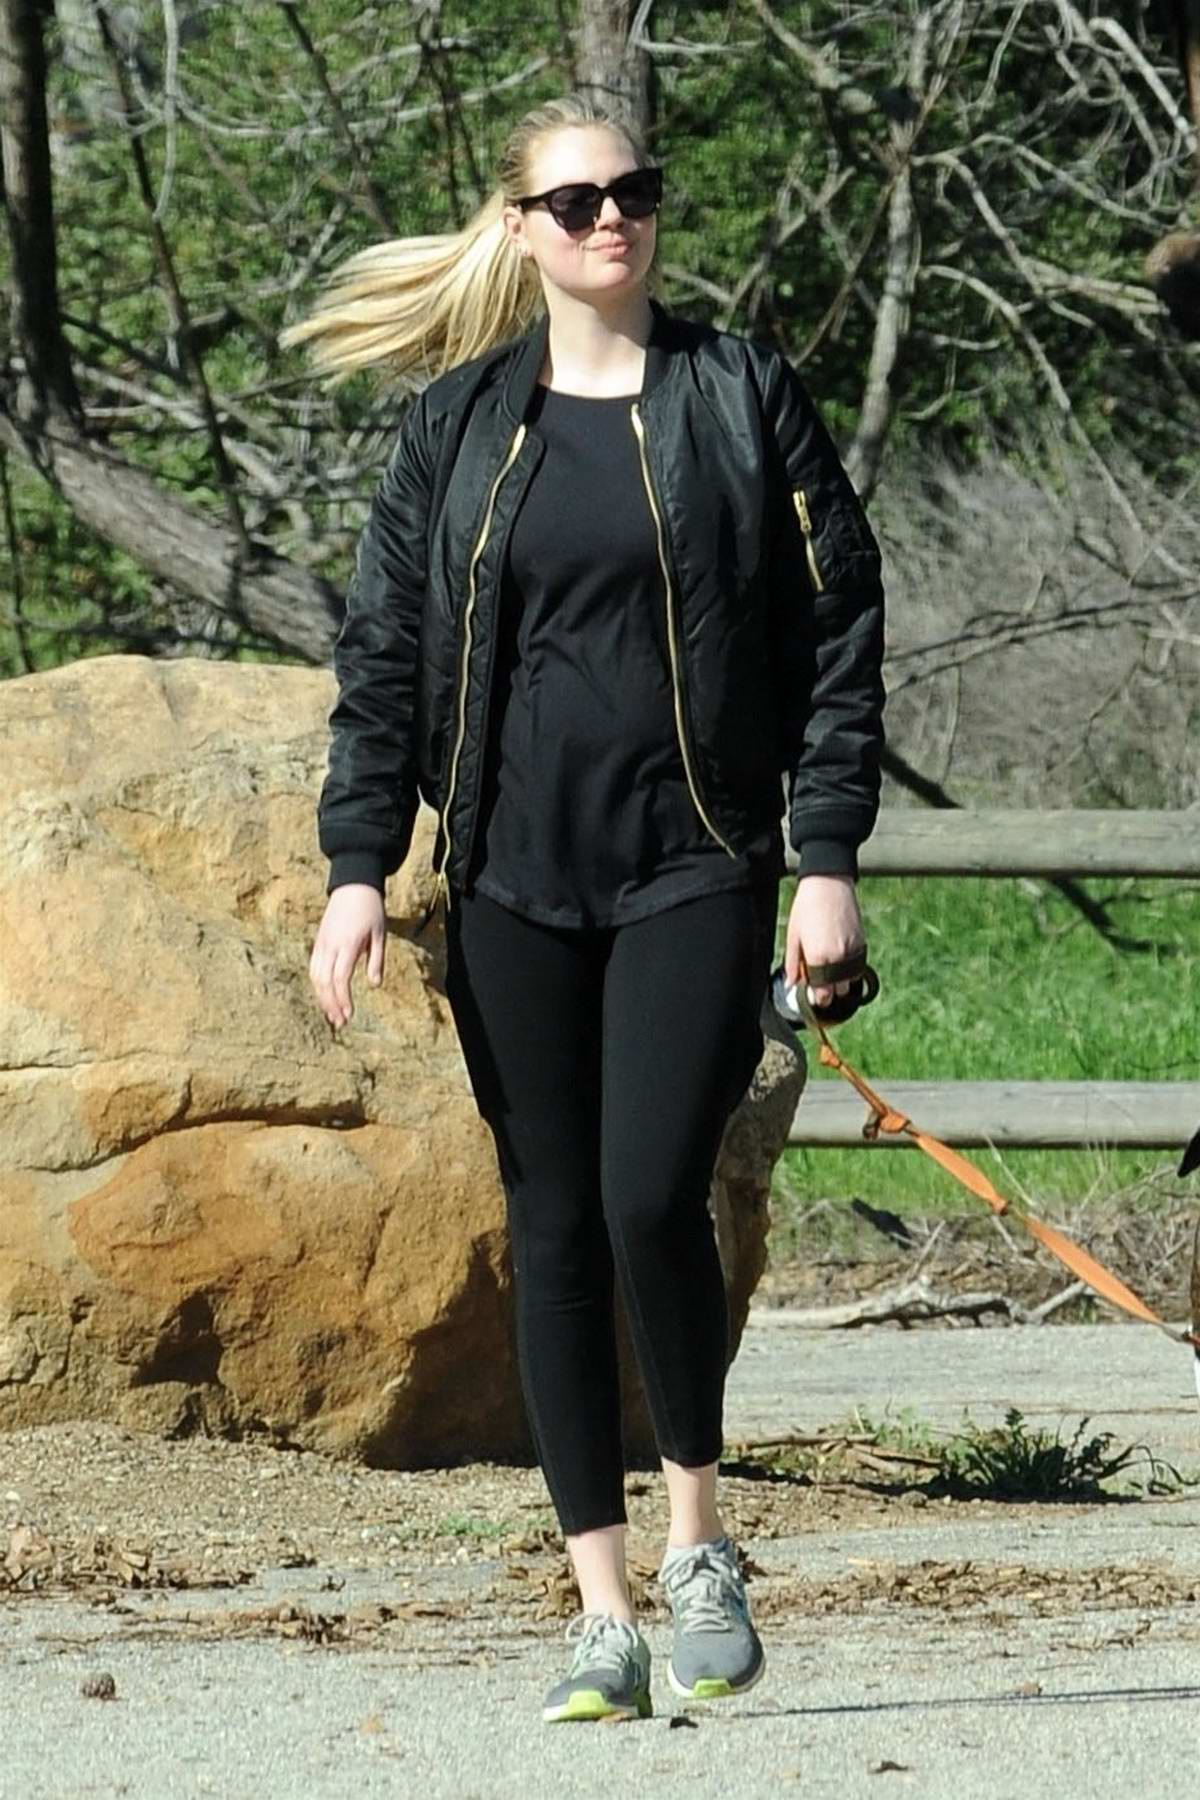 Kate Upton enjoys a morning hike with her dog in Beverly Hills, Los Angeles